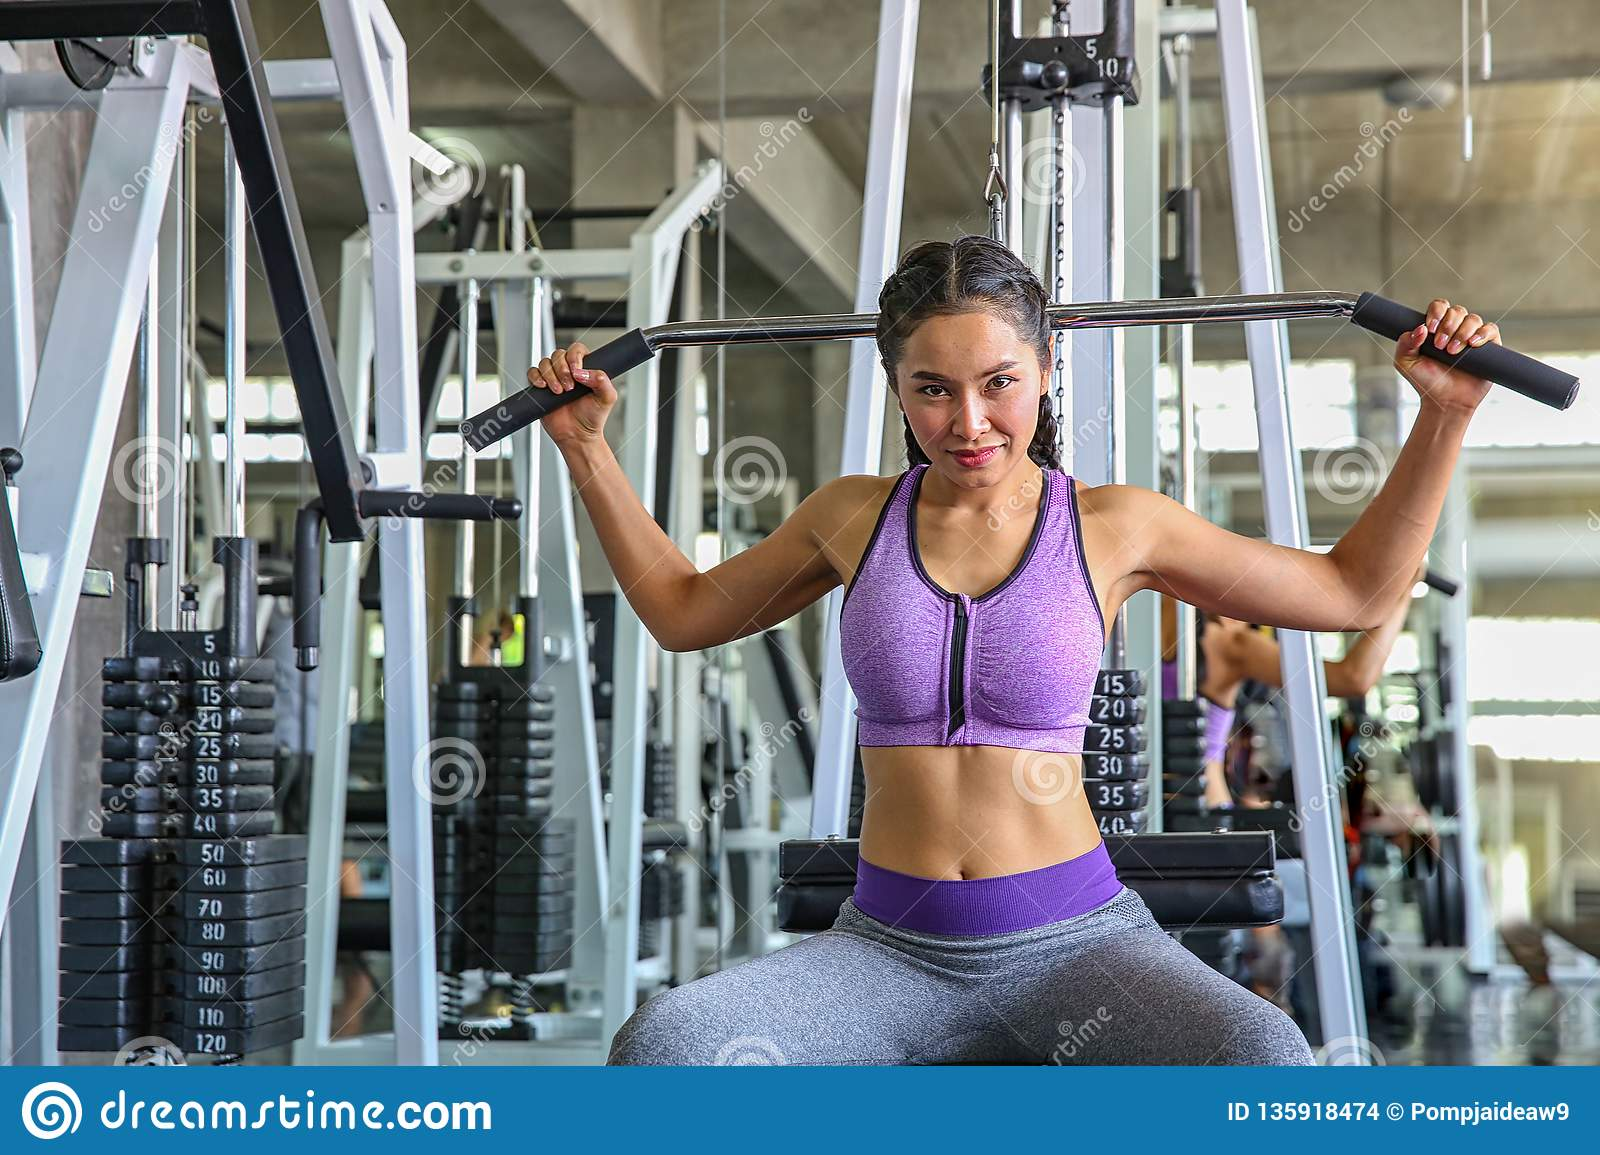 Female in gym. sport, fitness, bodybuilding, woman exercising and flexing muscles on machine in gym. asian girl. Asian girl